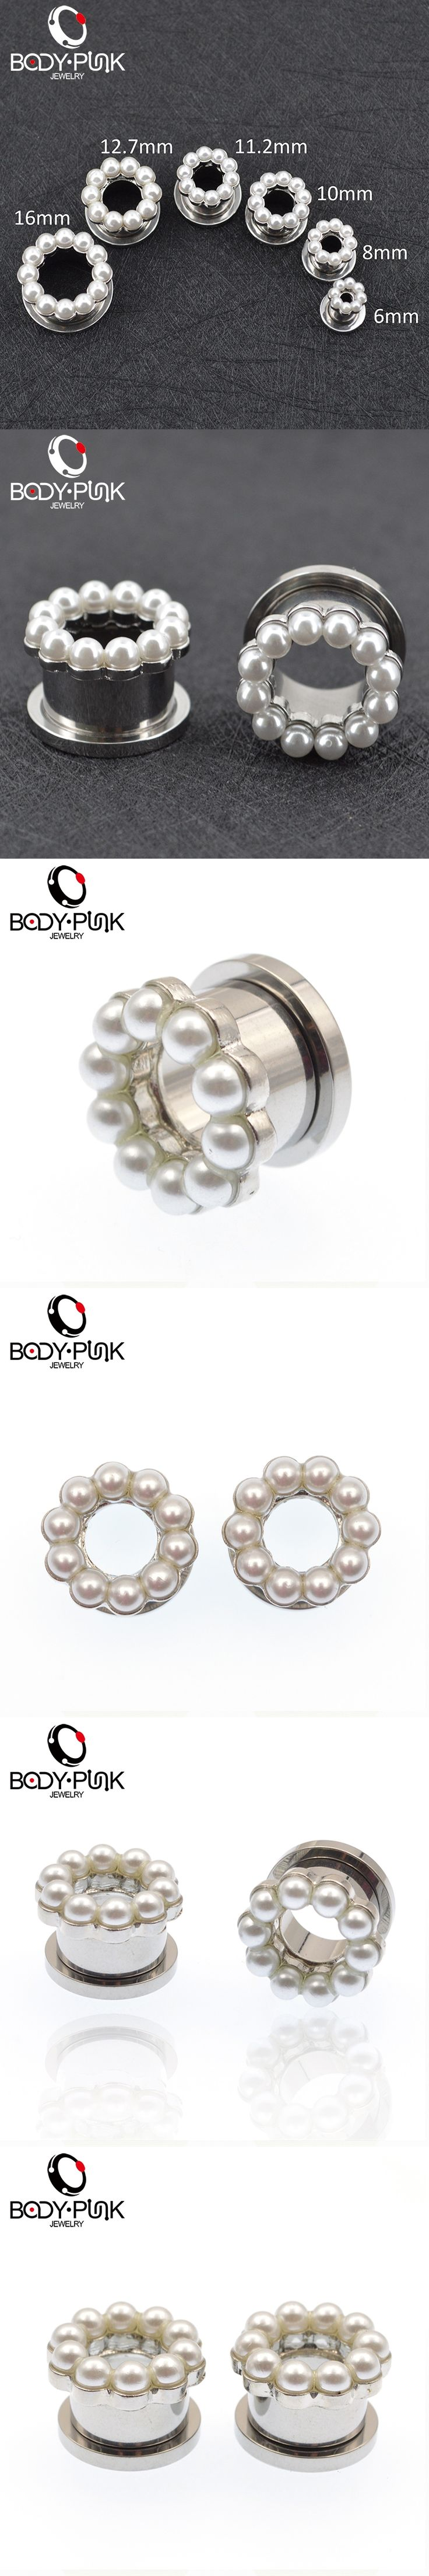 BODY PUNK Pearls Ear Plugs And Flesh Tunnels 2 Pcs Stainless Steel Fake Gauges Expander Body feminino Piercing Jewelry 6-16mm